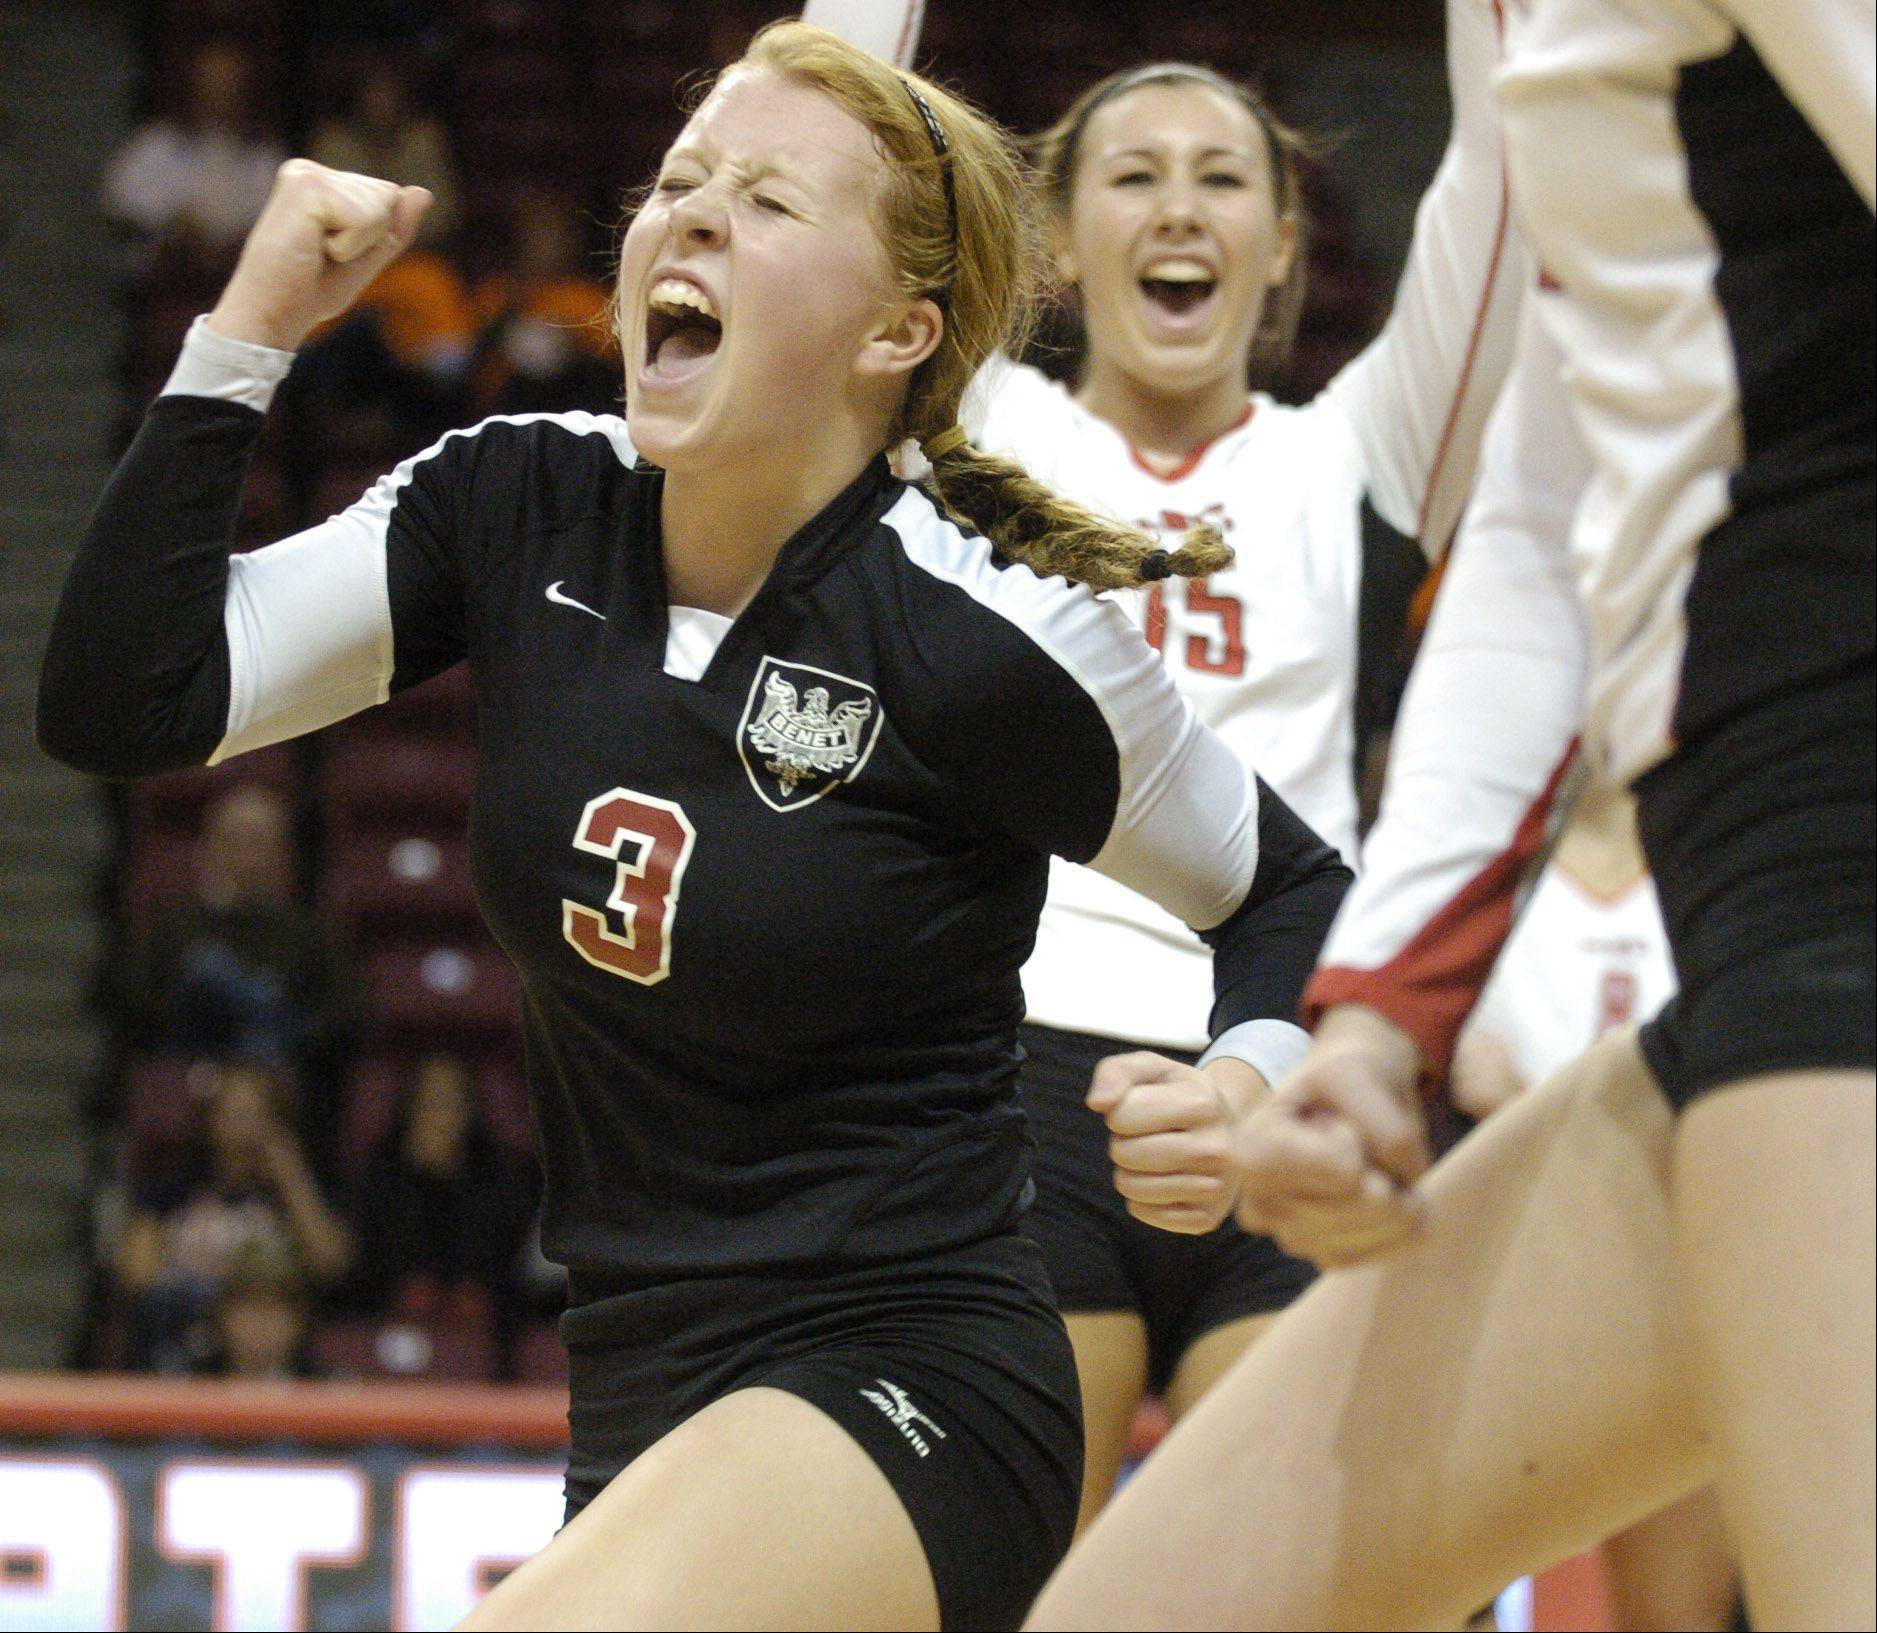 Images: Class 4A state girls volleyball championship